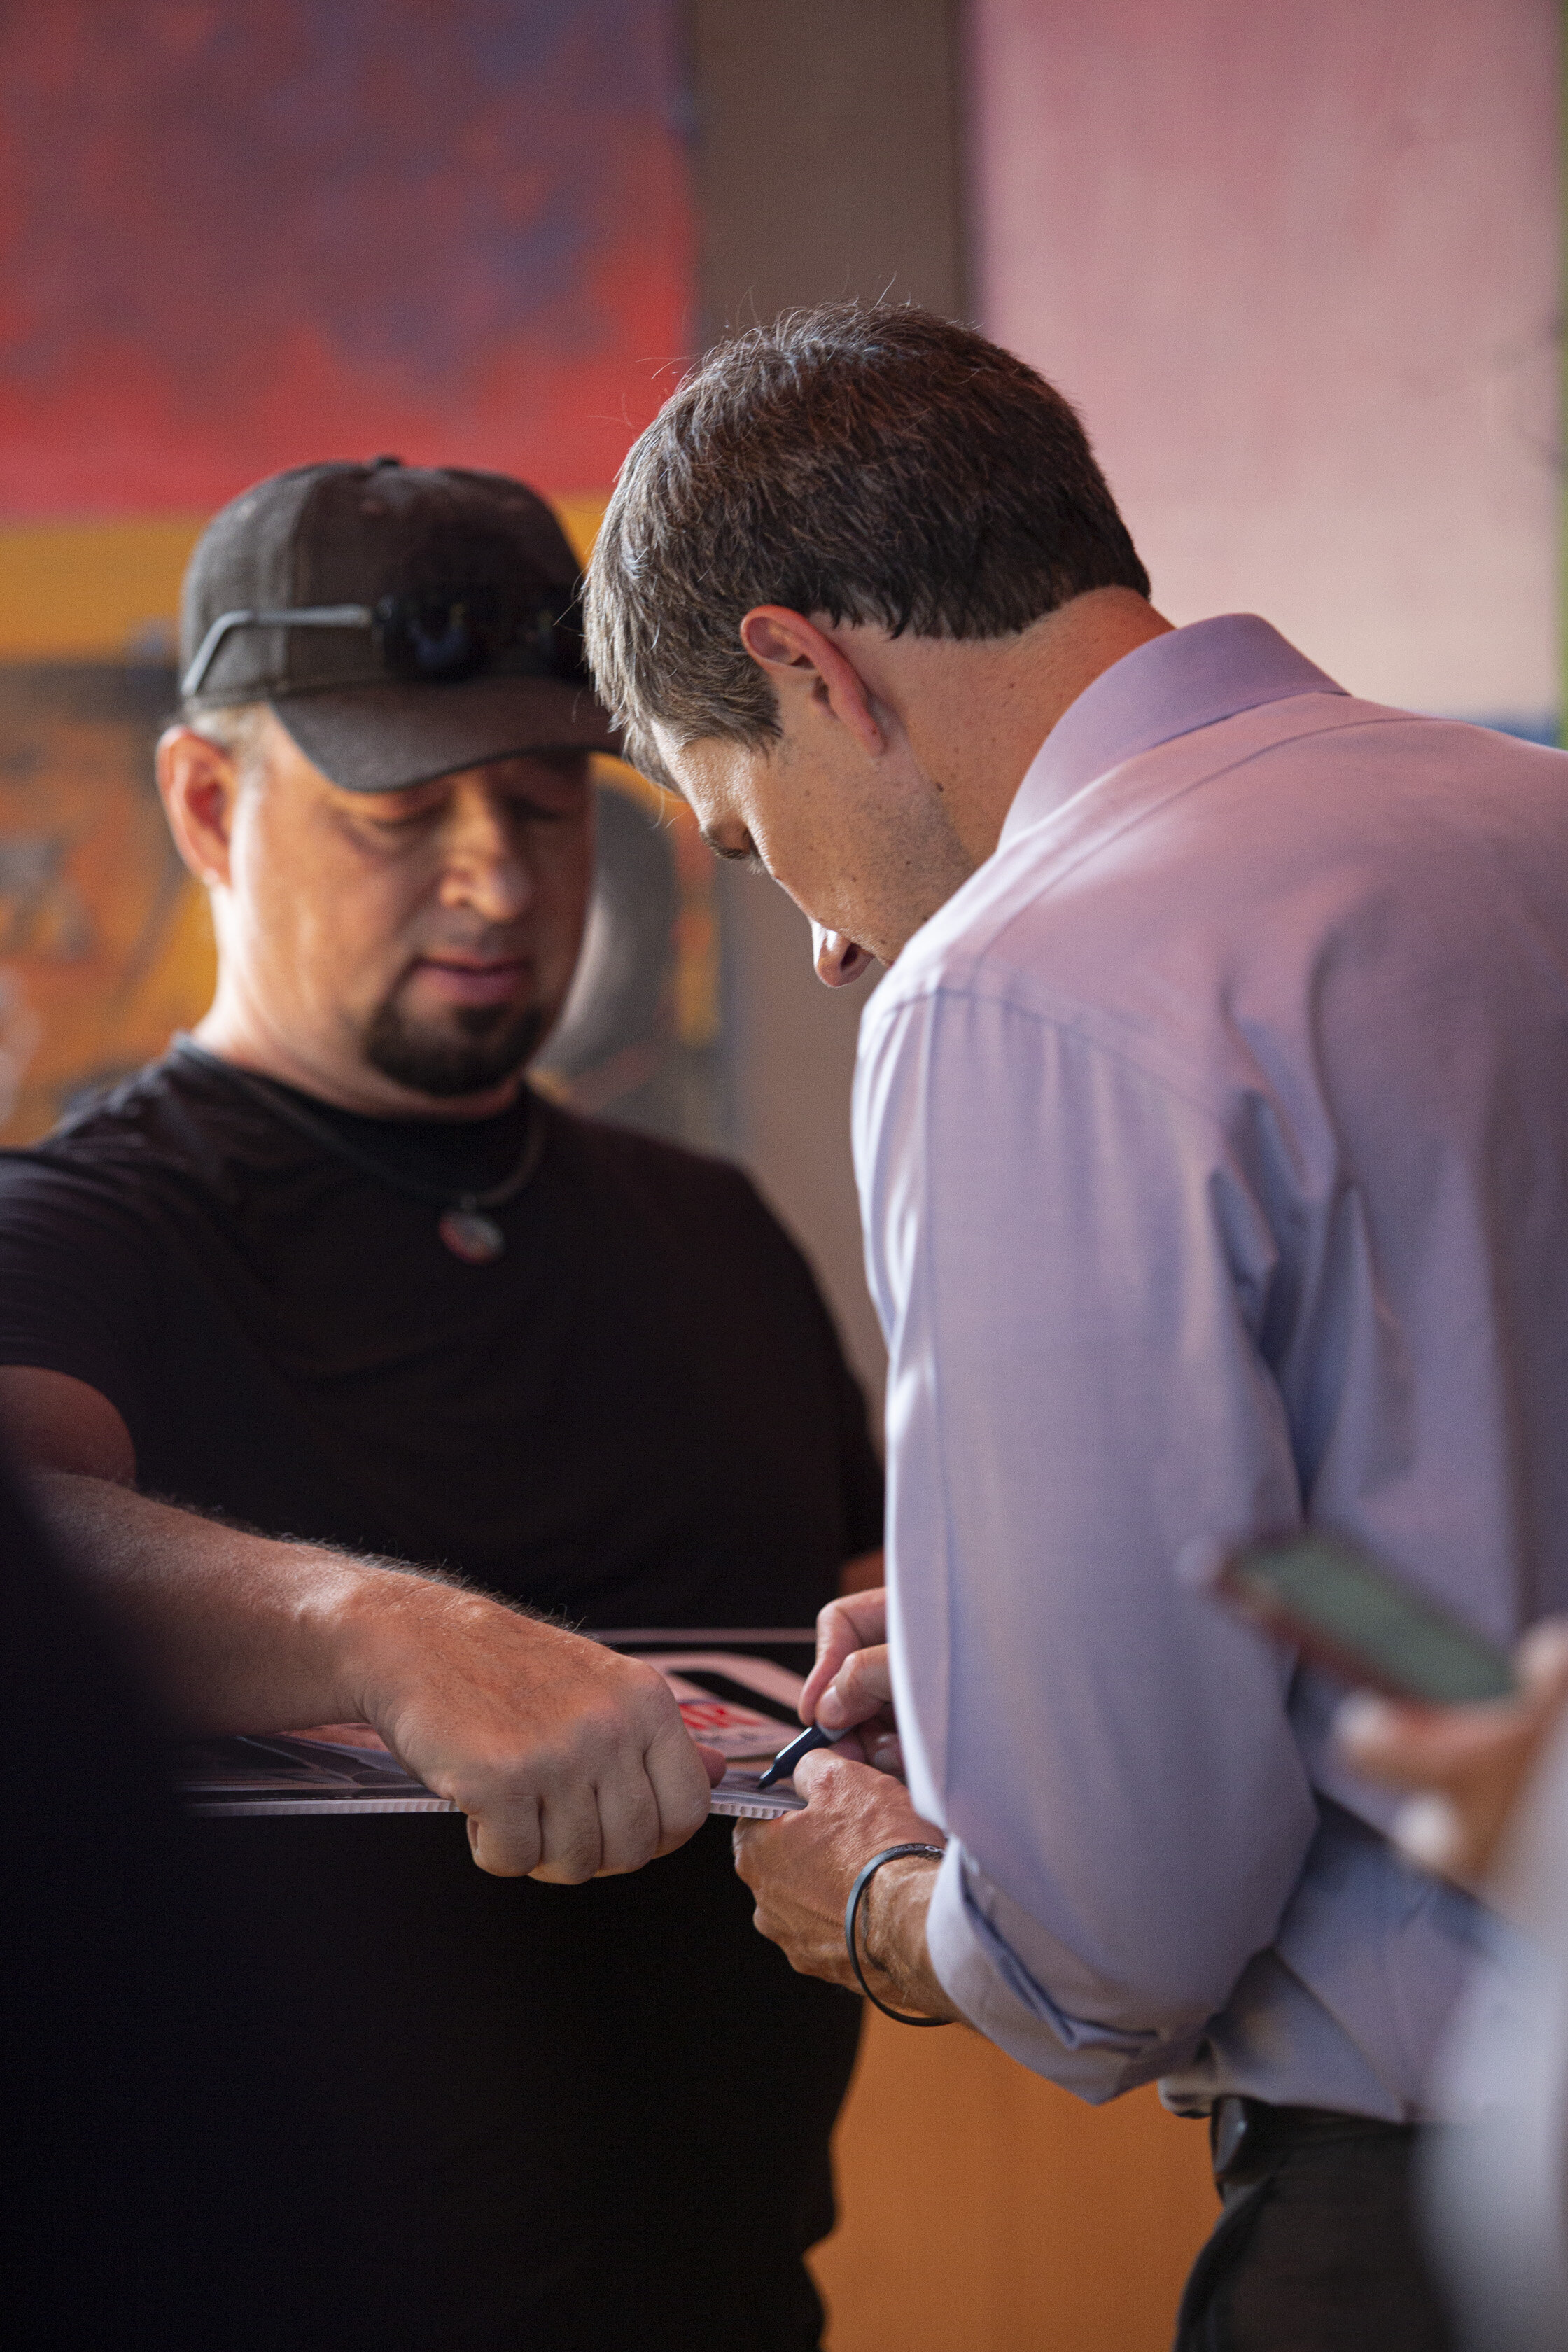 Democratic Presidential Candidate Beto O'Rourke signing a picture of himself for a supporter at the end of the town hall event at Casa del Mexicano, on Saturday, October 5, in Los Angeles, Calif. (Yasamin Jtehrani / The Corsair)